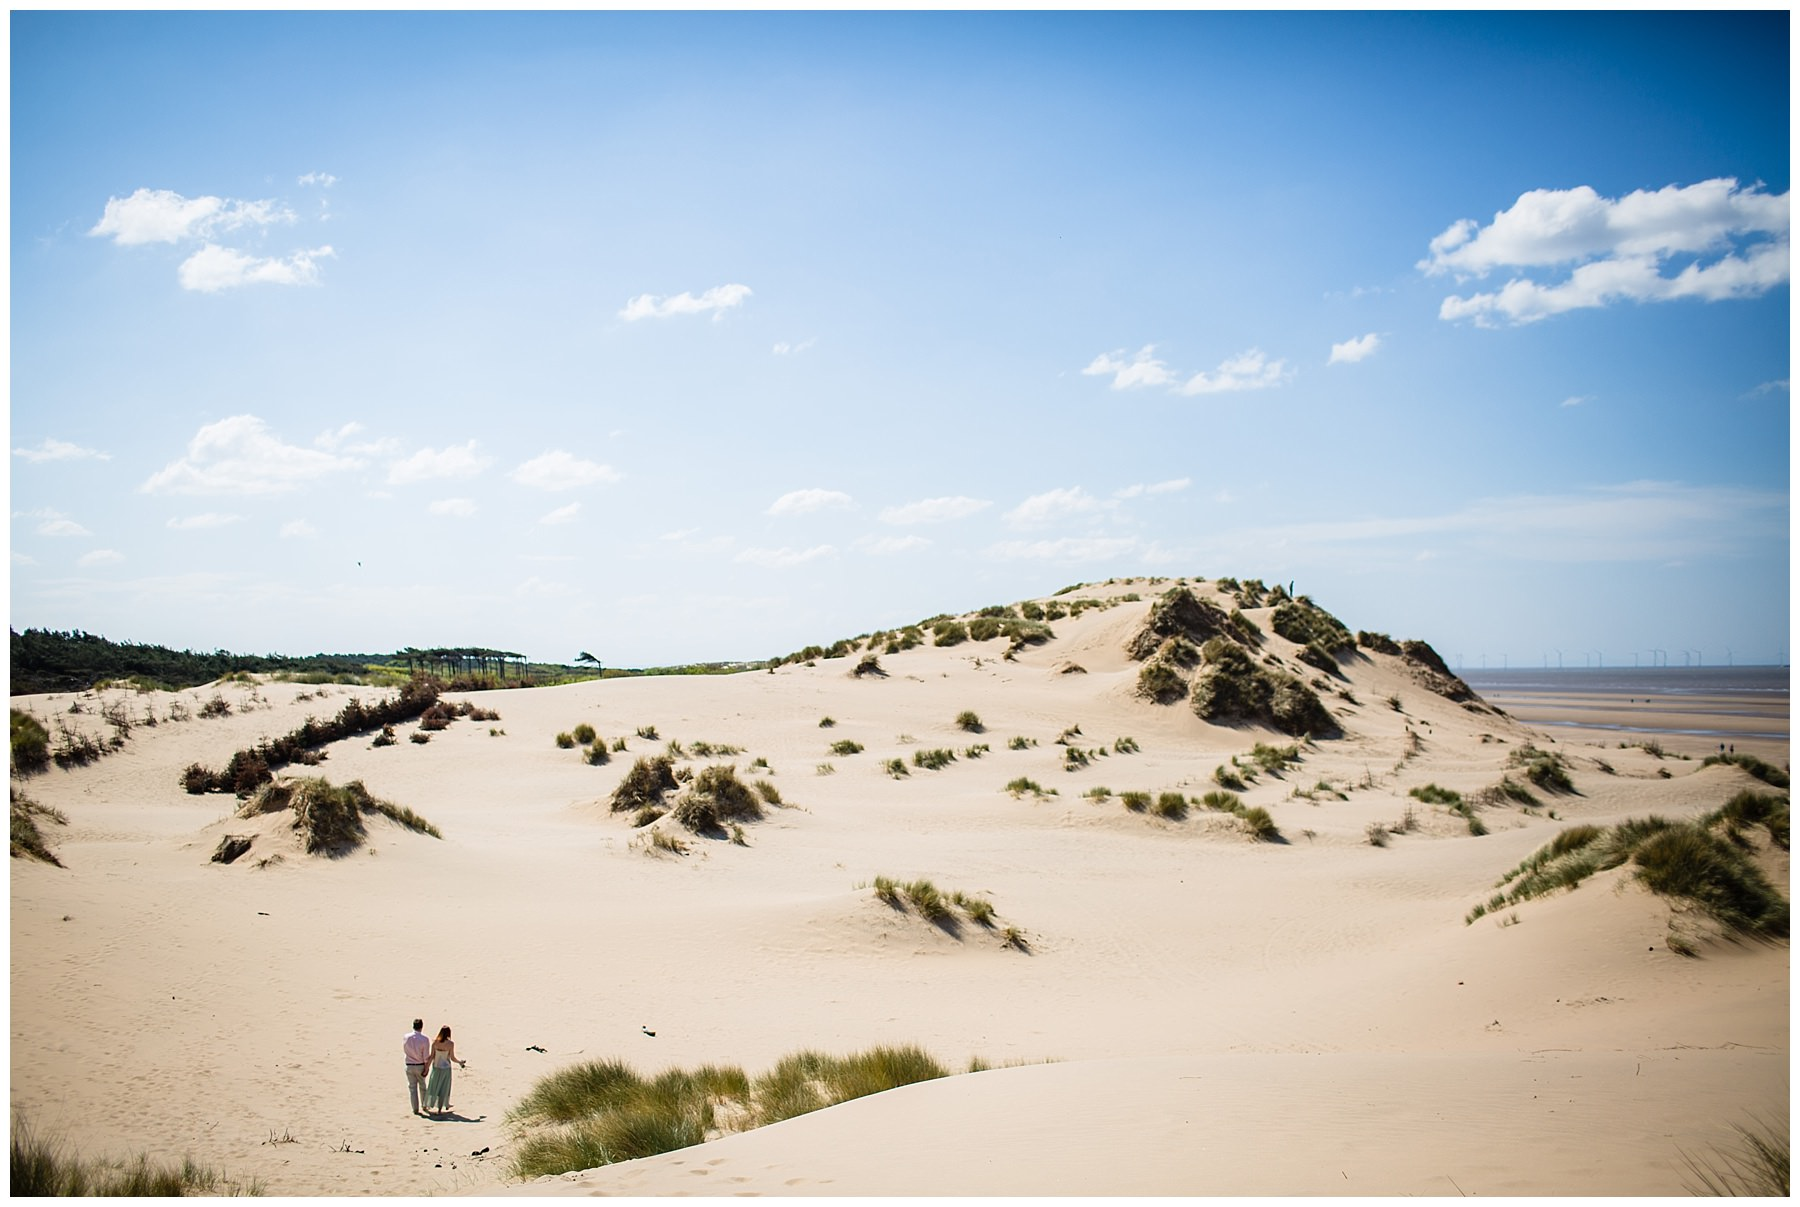 views of the dunes at formby beacjh engagement shoot